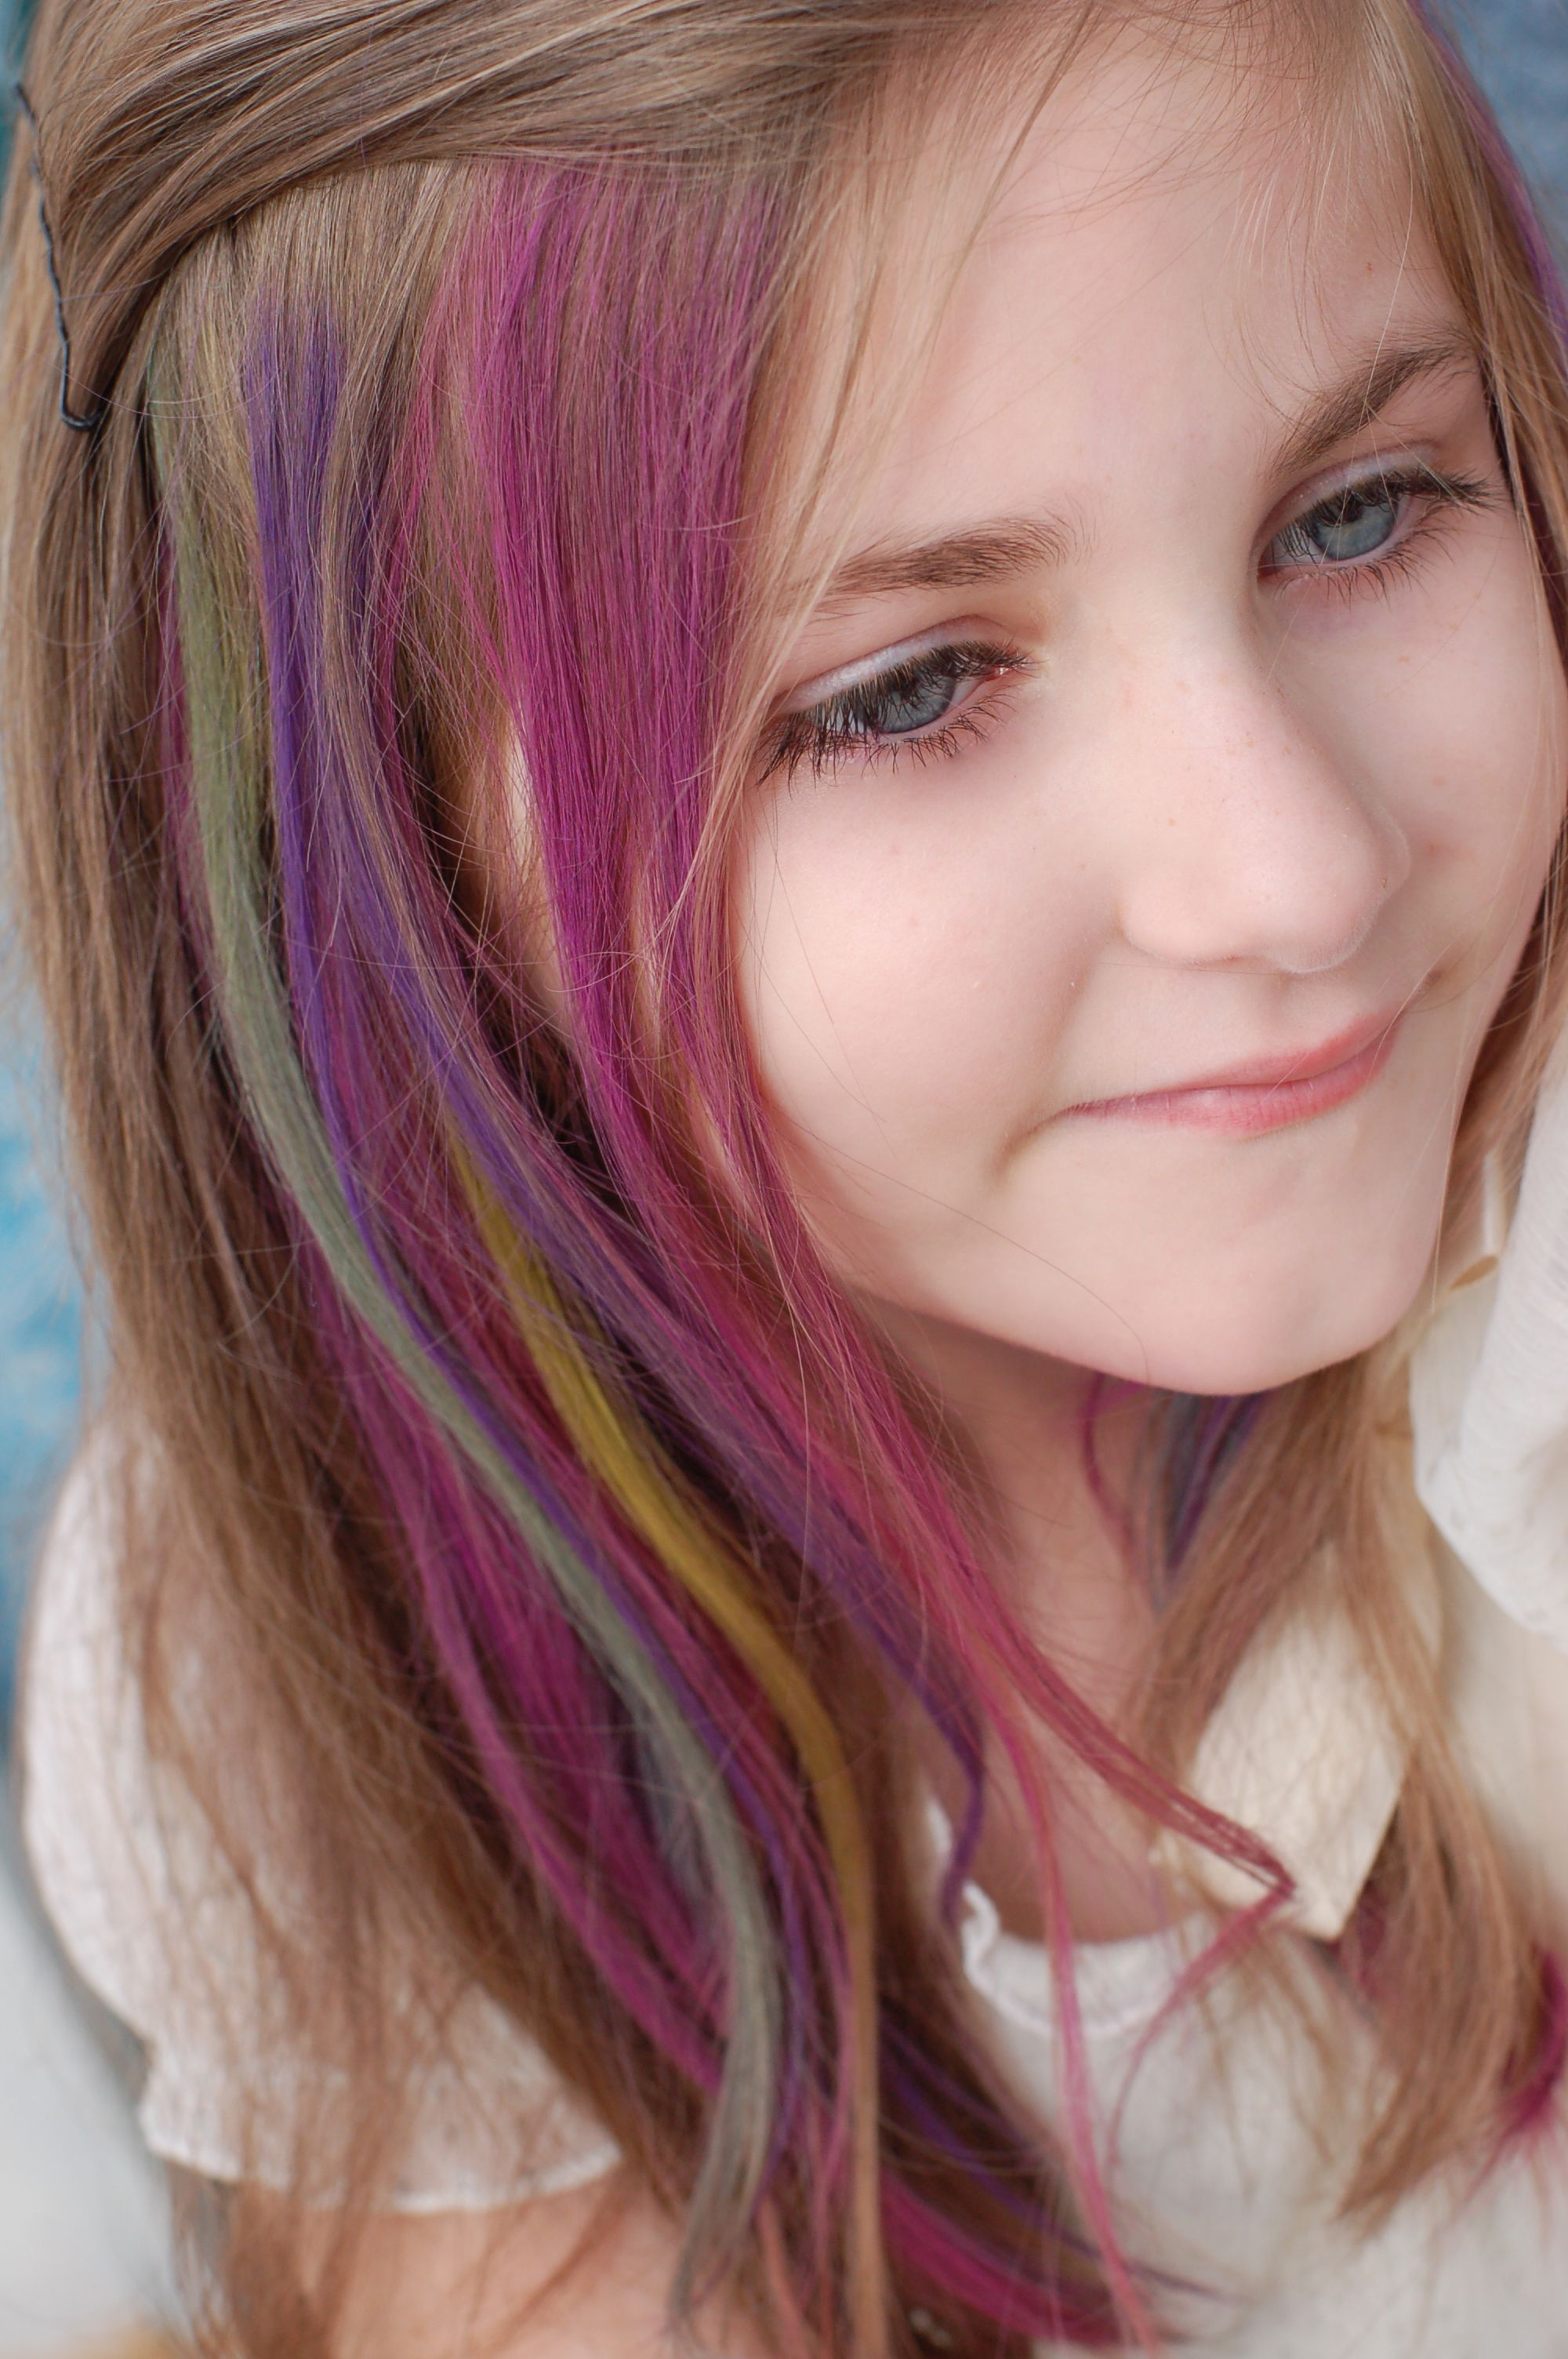 Types of Hair Color | Temporary hair color, Hair coloring and Girls